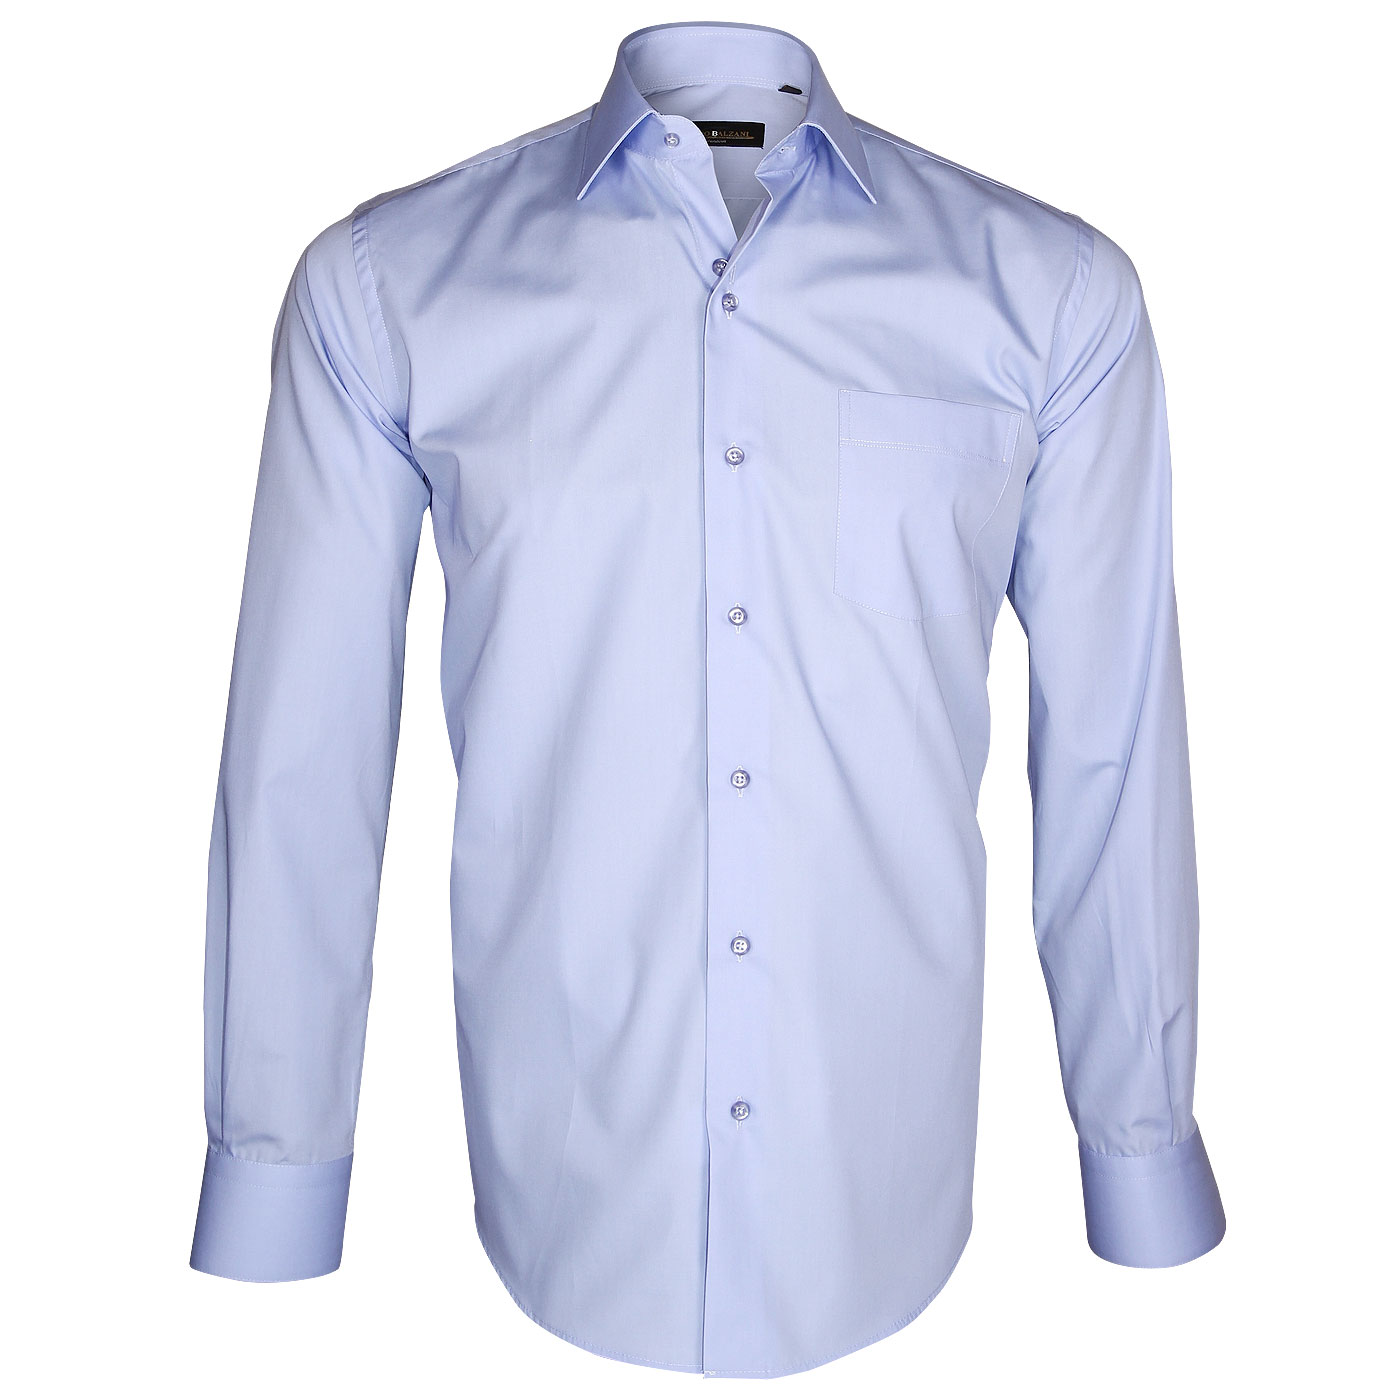 High quality shirts for easy ironing easy care